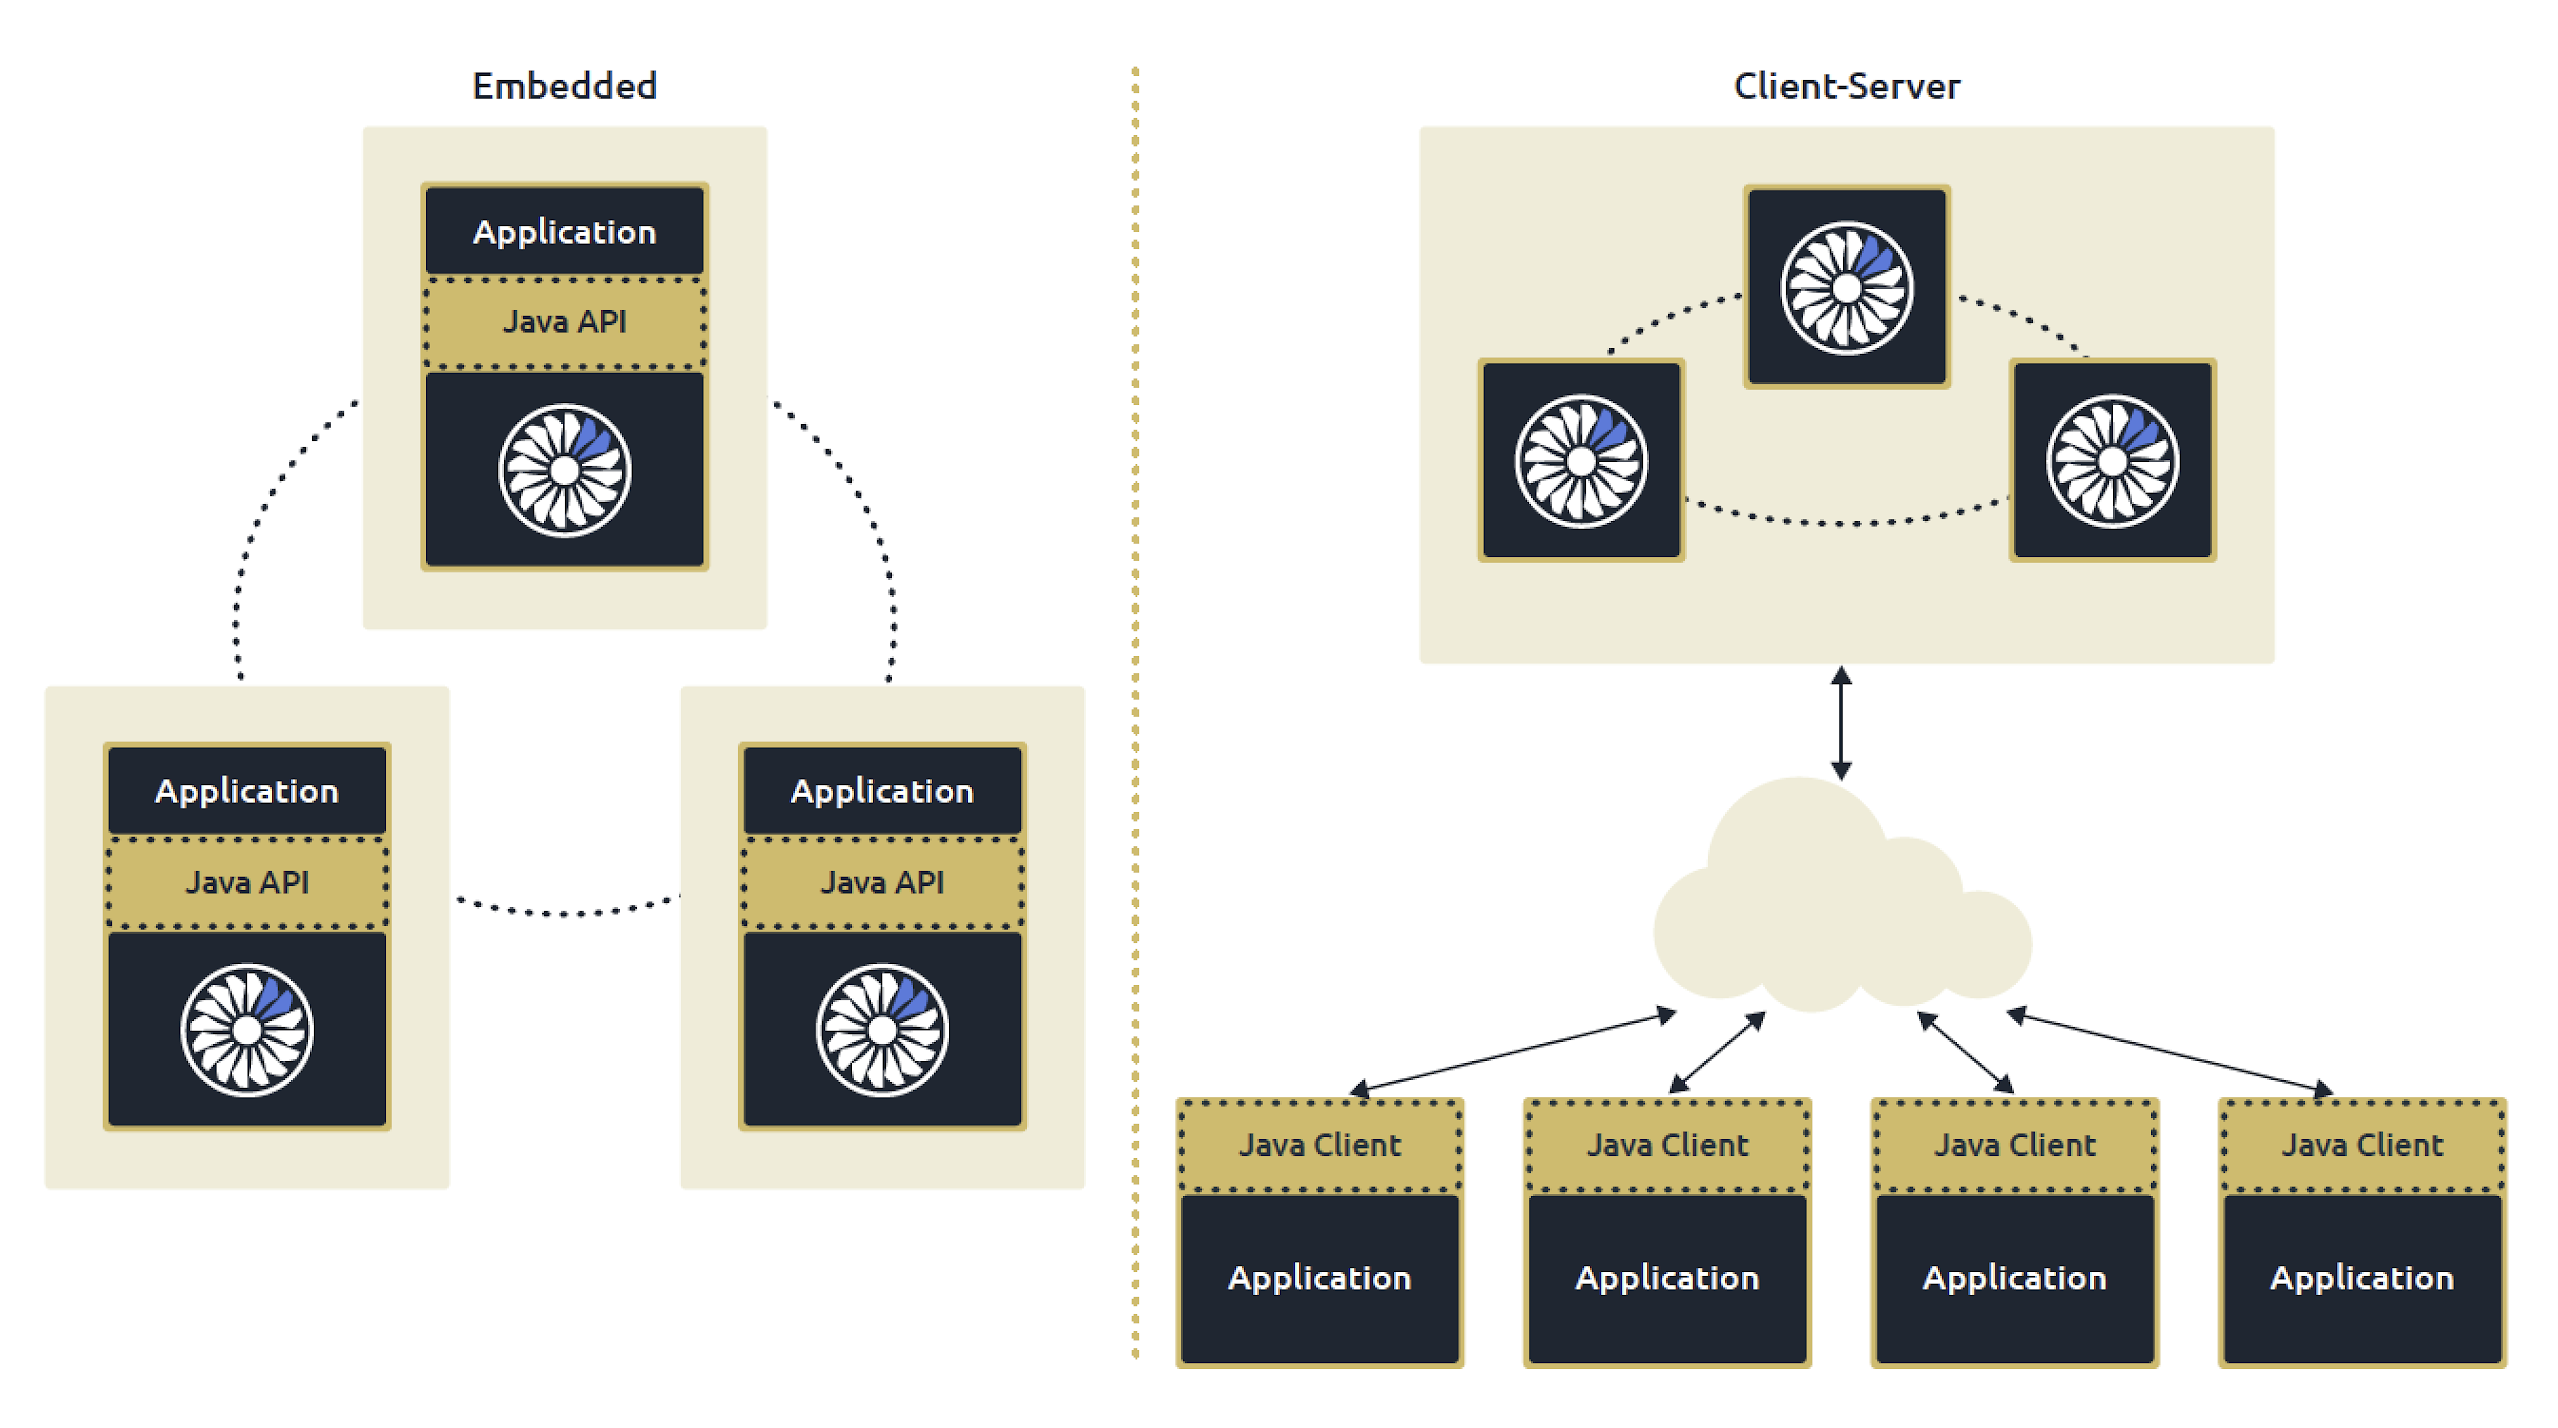 Hazelcast can be embedded in your apps, or be deployed in a client-server model.